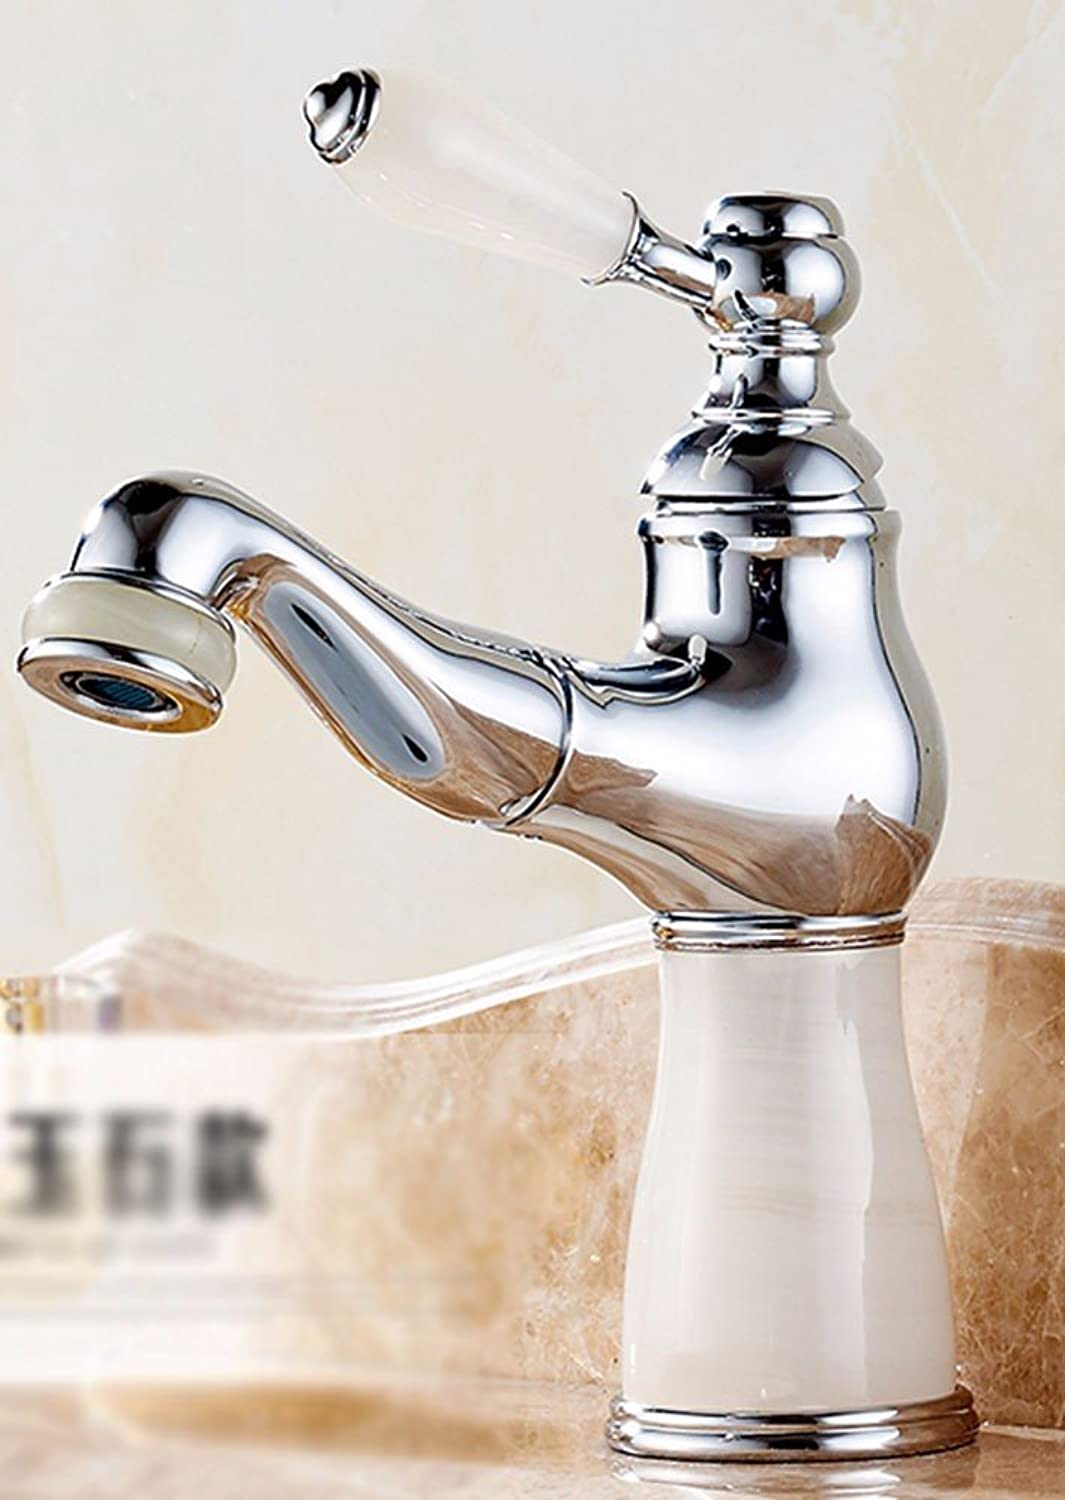 LHbox Basin Mixer Tap Bathroom Sink Faucet European style, copper, jade, out of the bathroom, Single Hole basin, hot & cold water taps, 9